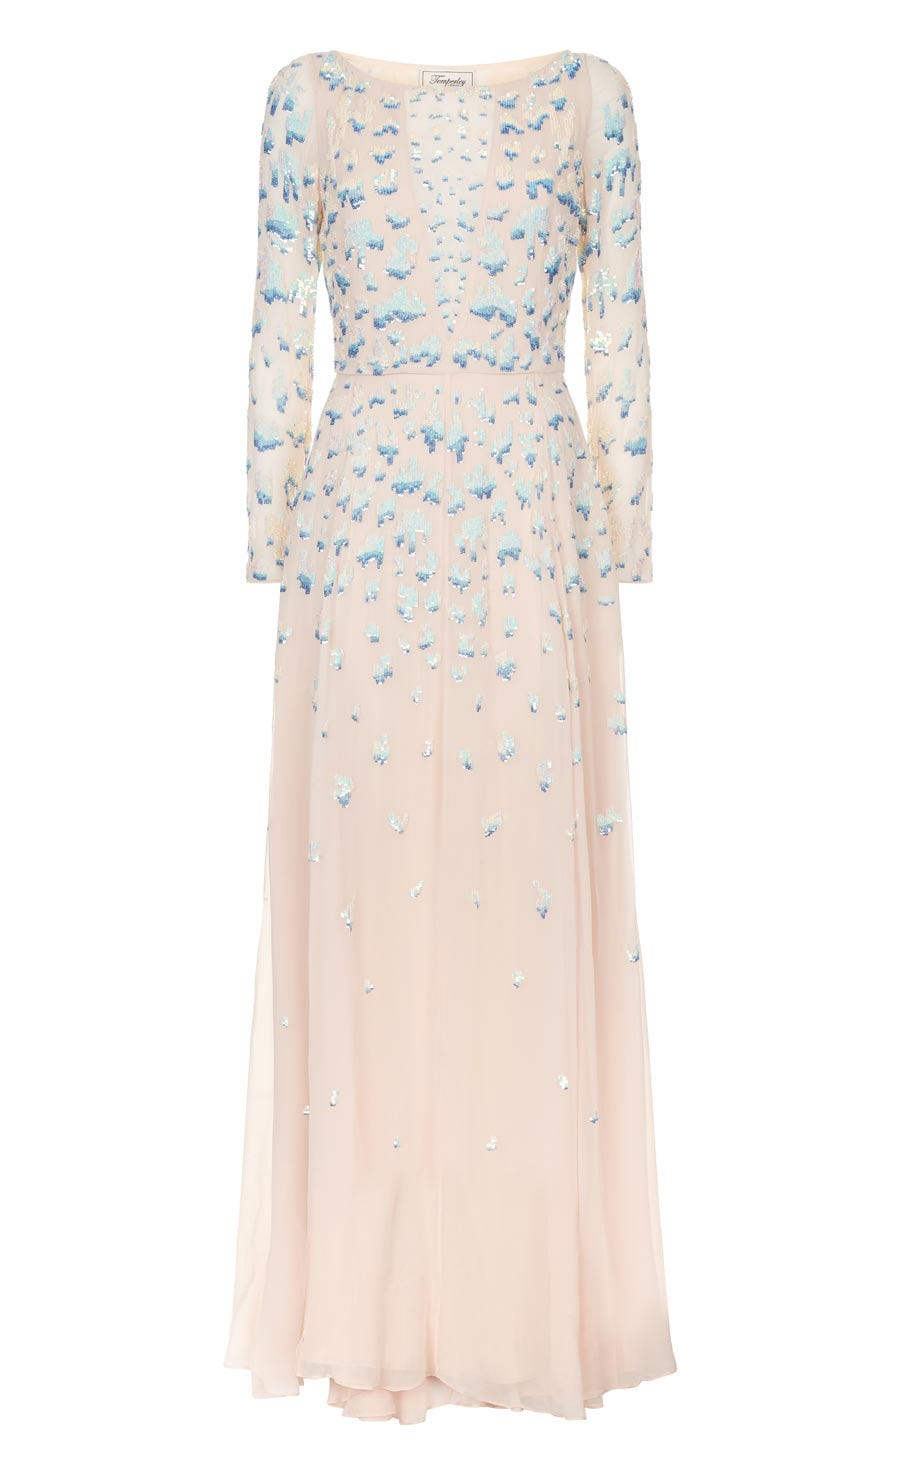 Royal Ascot Dresses for the Races & Wedding Outfits | Page 3 ...